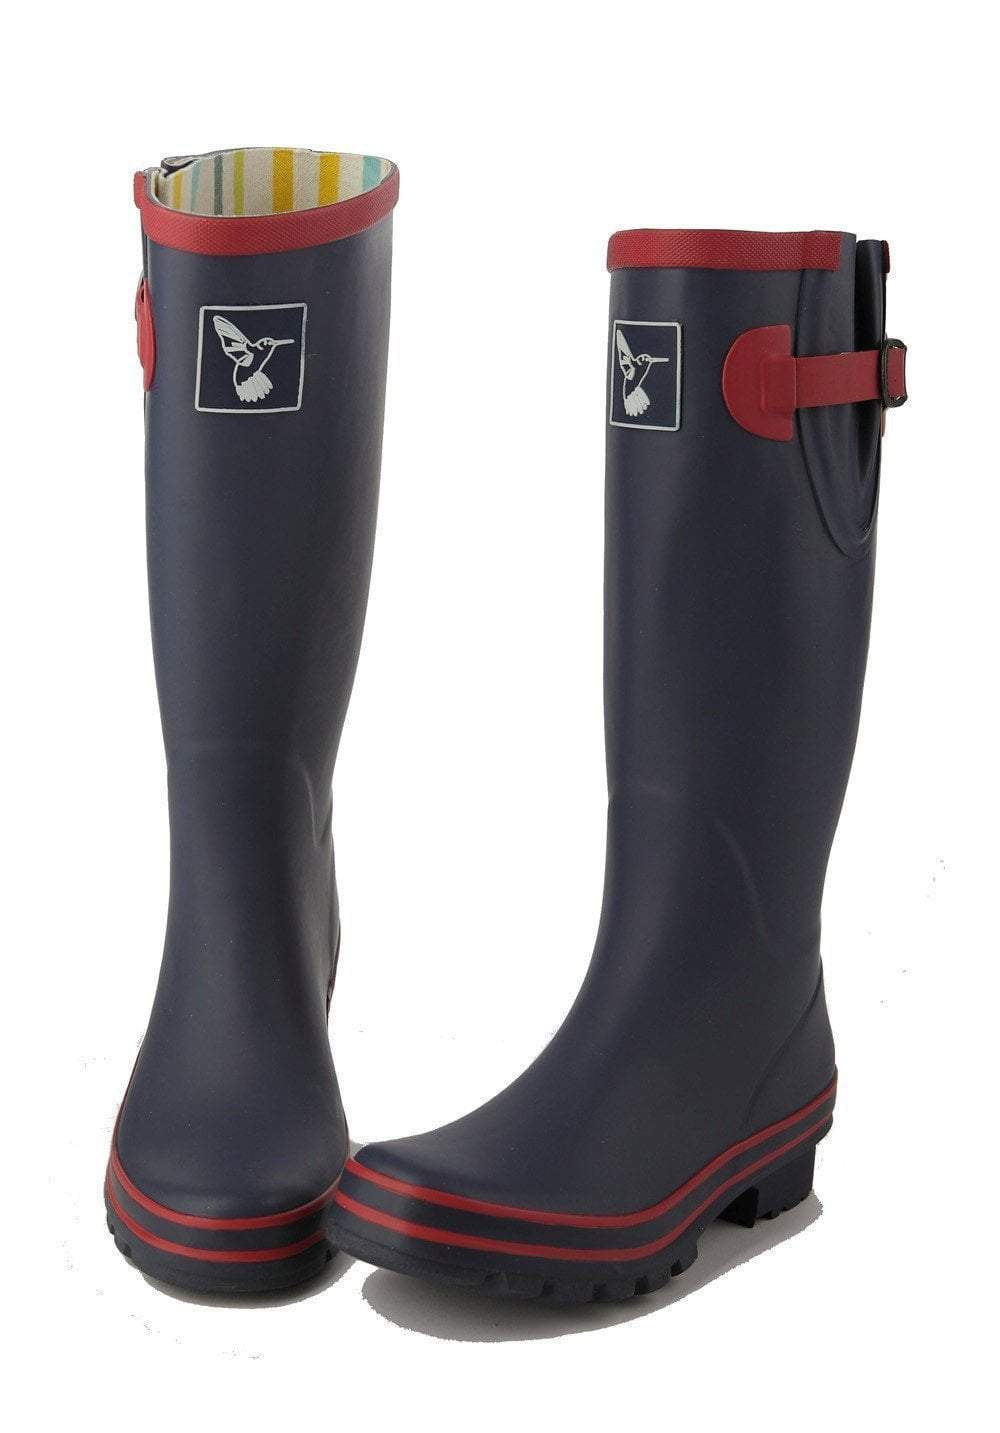 Evercreatures Raspnavy Tall Wellies - Evercreatures wellies